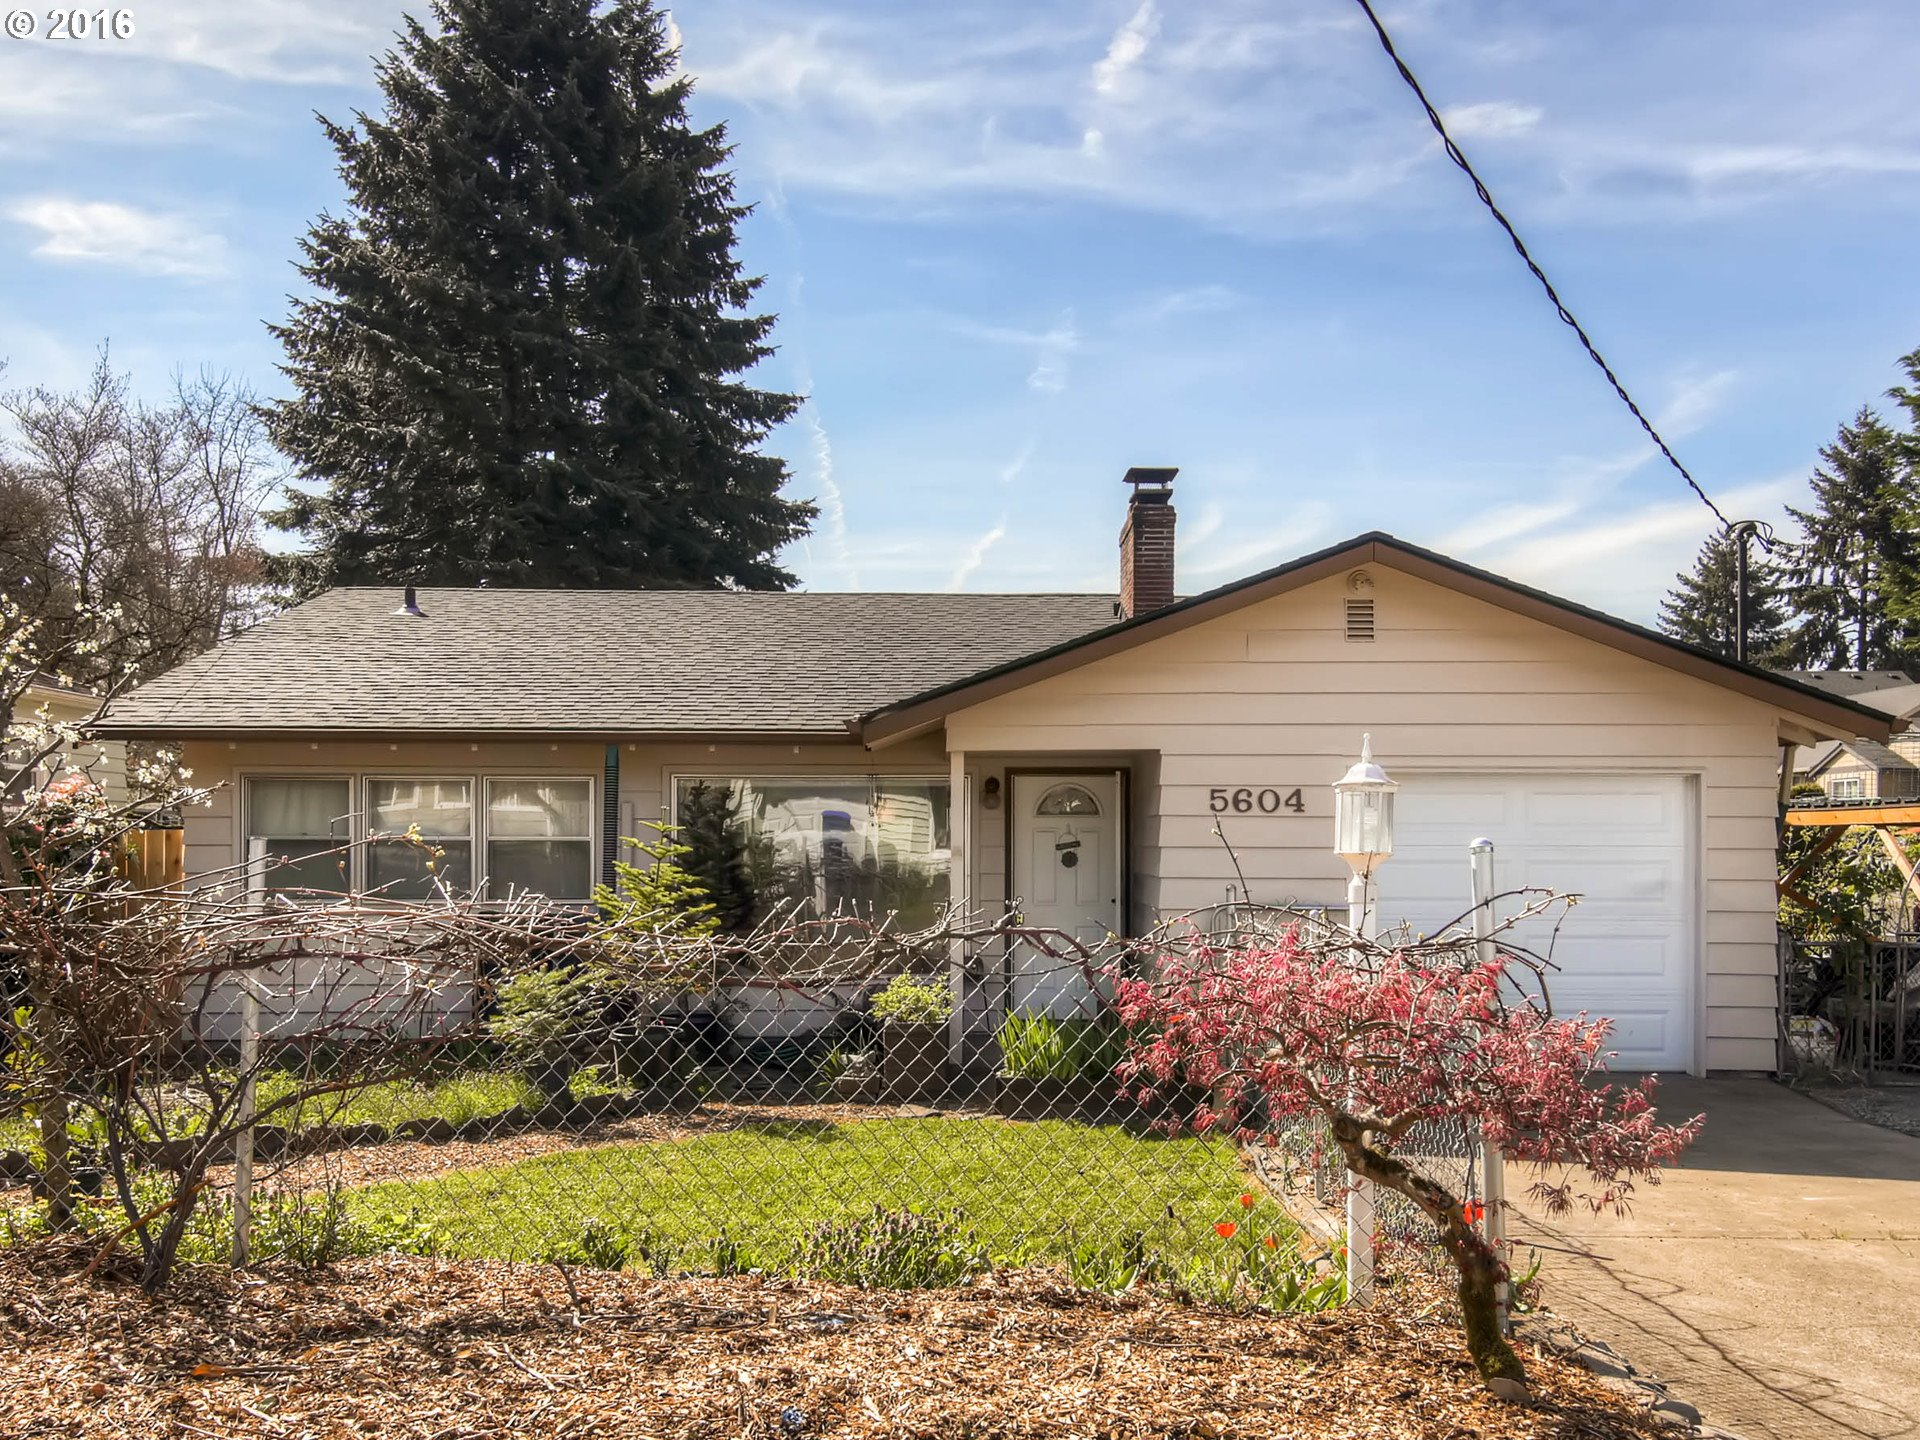 $275,000 - 3Br/1Ba -  for Sale in Waymire, Milwaukie